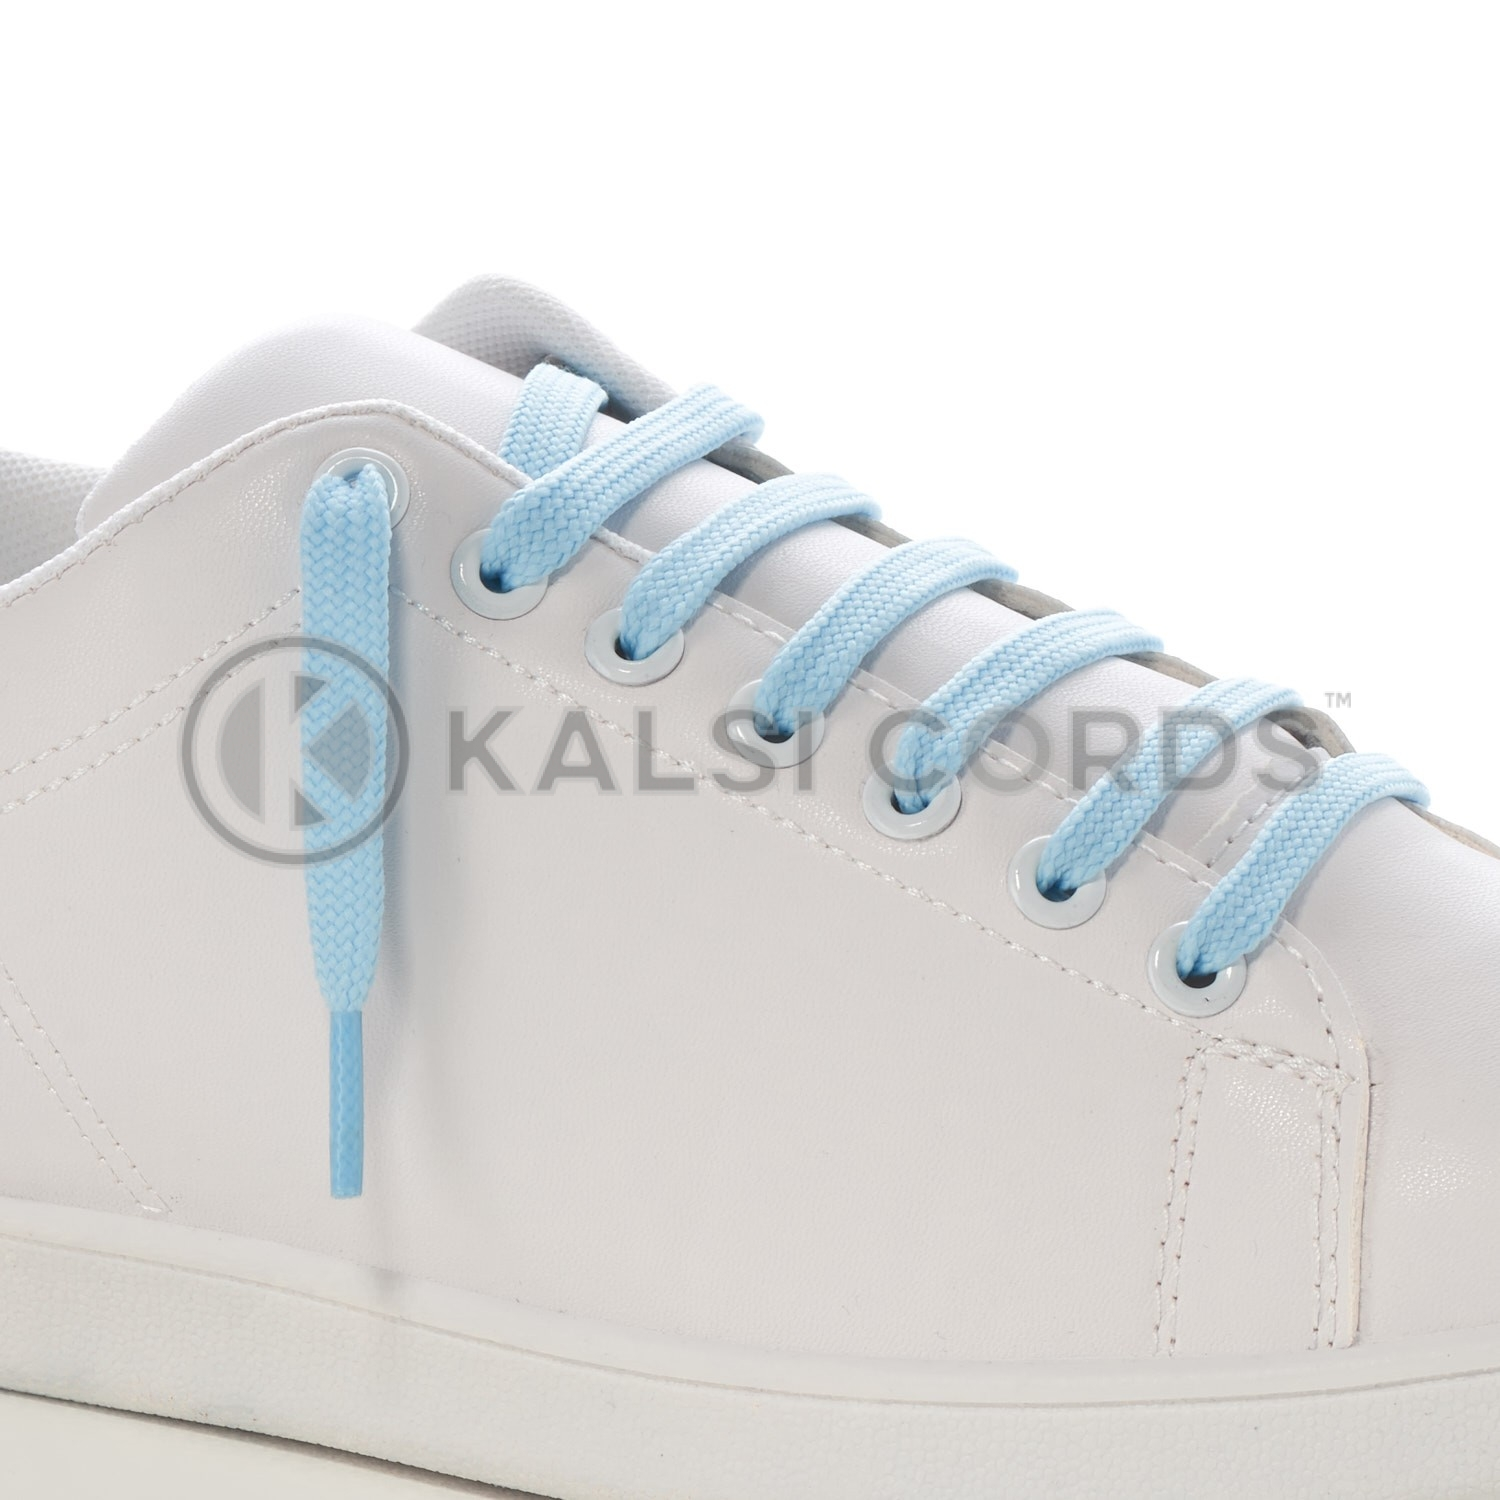 9mm Flat Shoe Laces Tubular Baby Blue PG835 Sports Trainers Boots Footwear Drawstring Drawcord